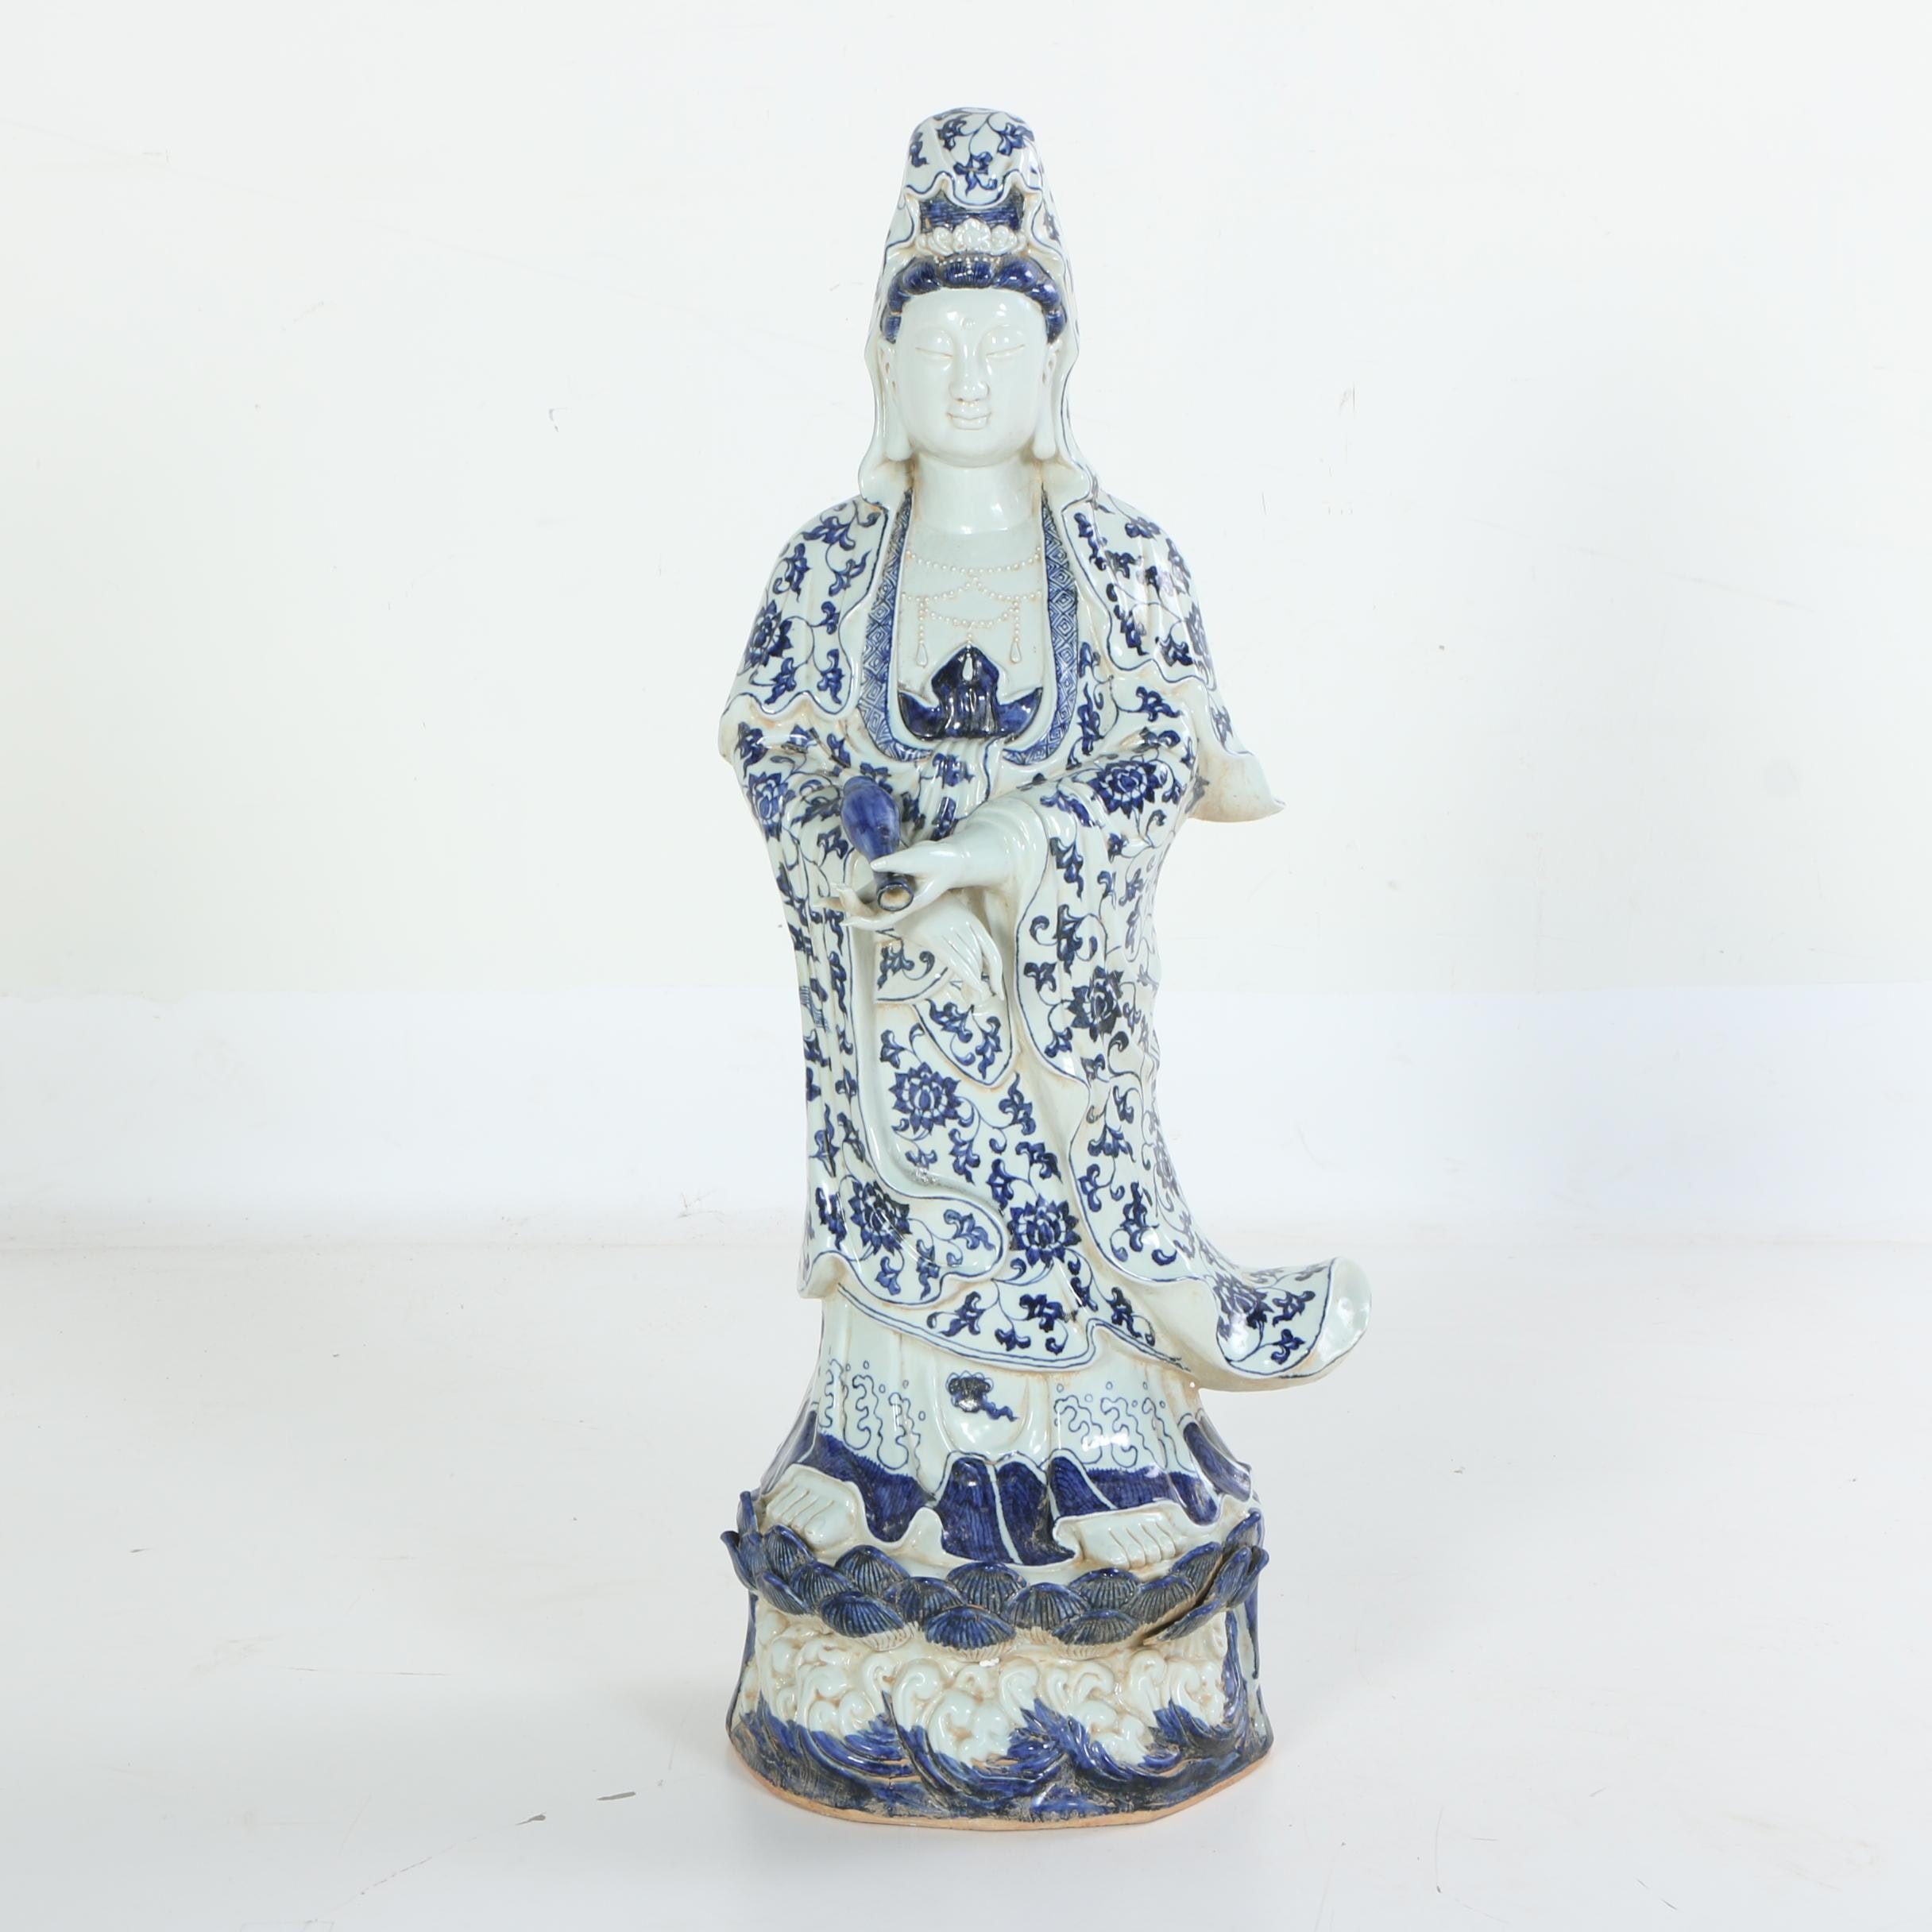 Chinese Guanyin Blue and White Hand-Painted Ceramic Figurine